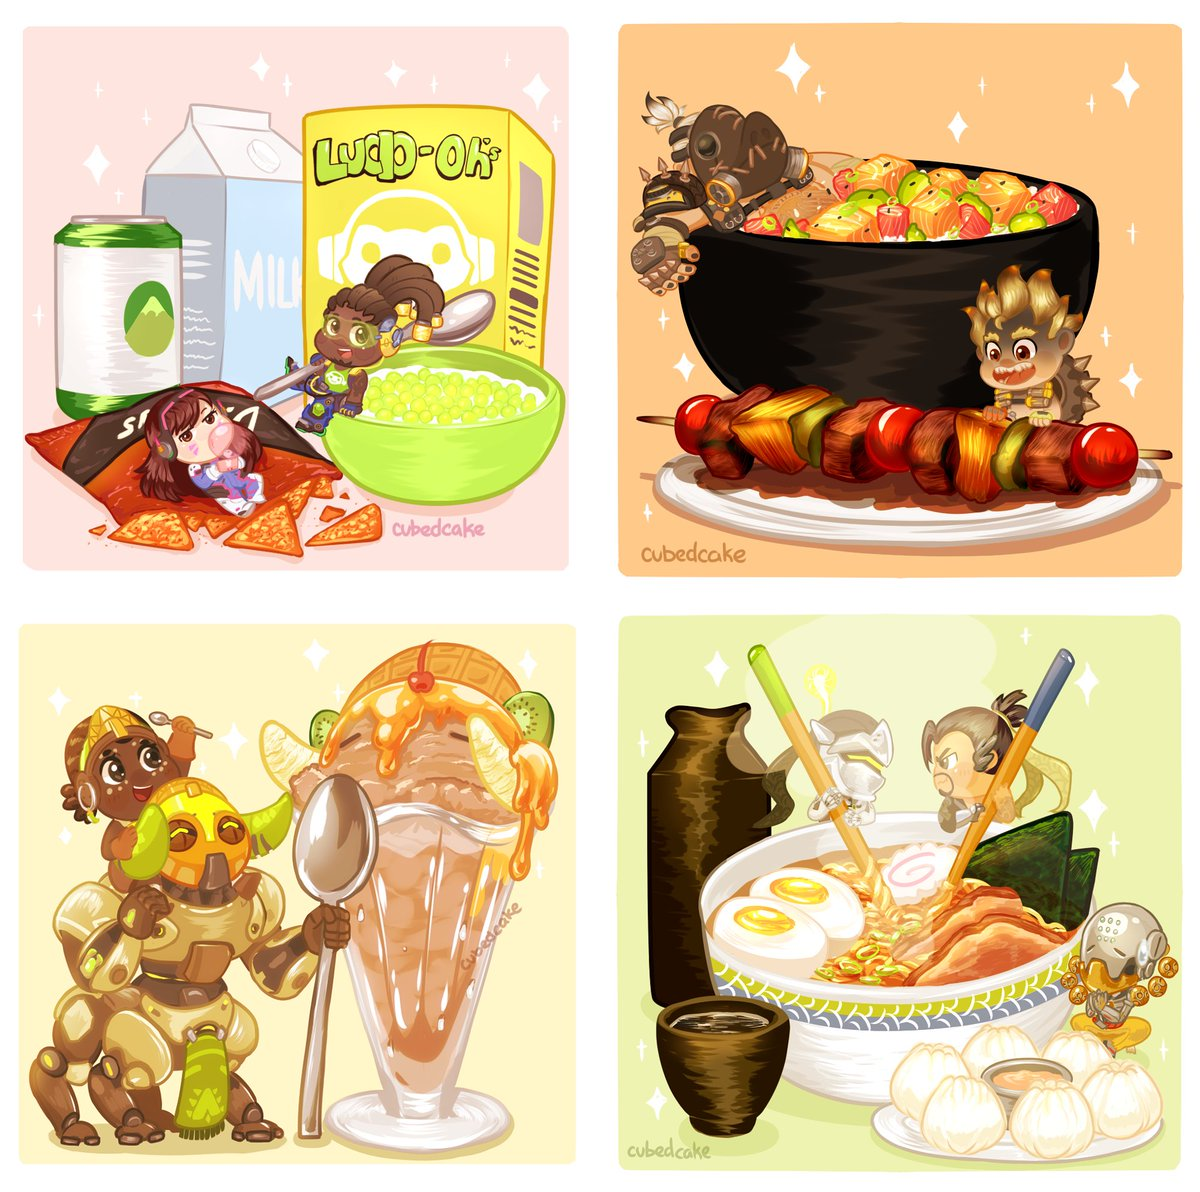 I'm still very happy with the Overwatch: Food series I did a year ago! 🍴😋 #Overwatch